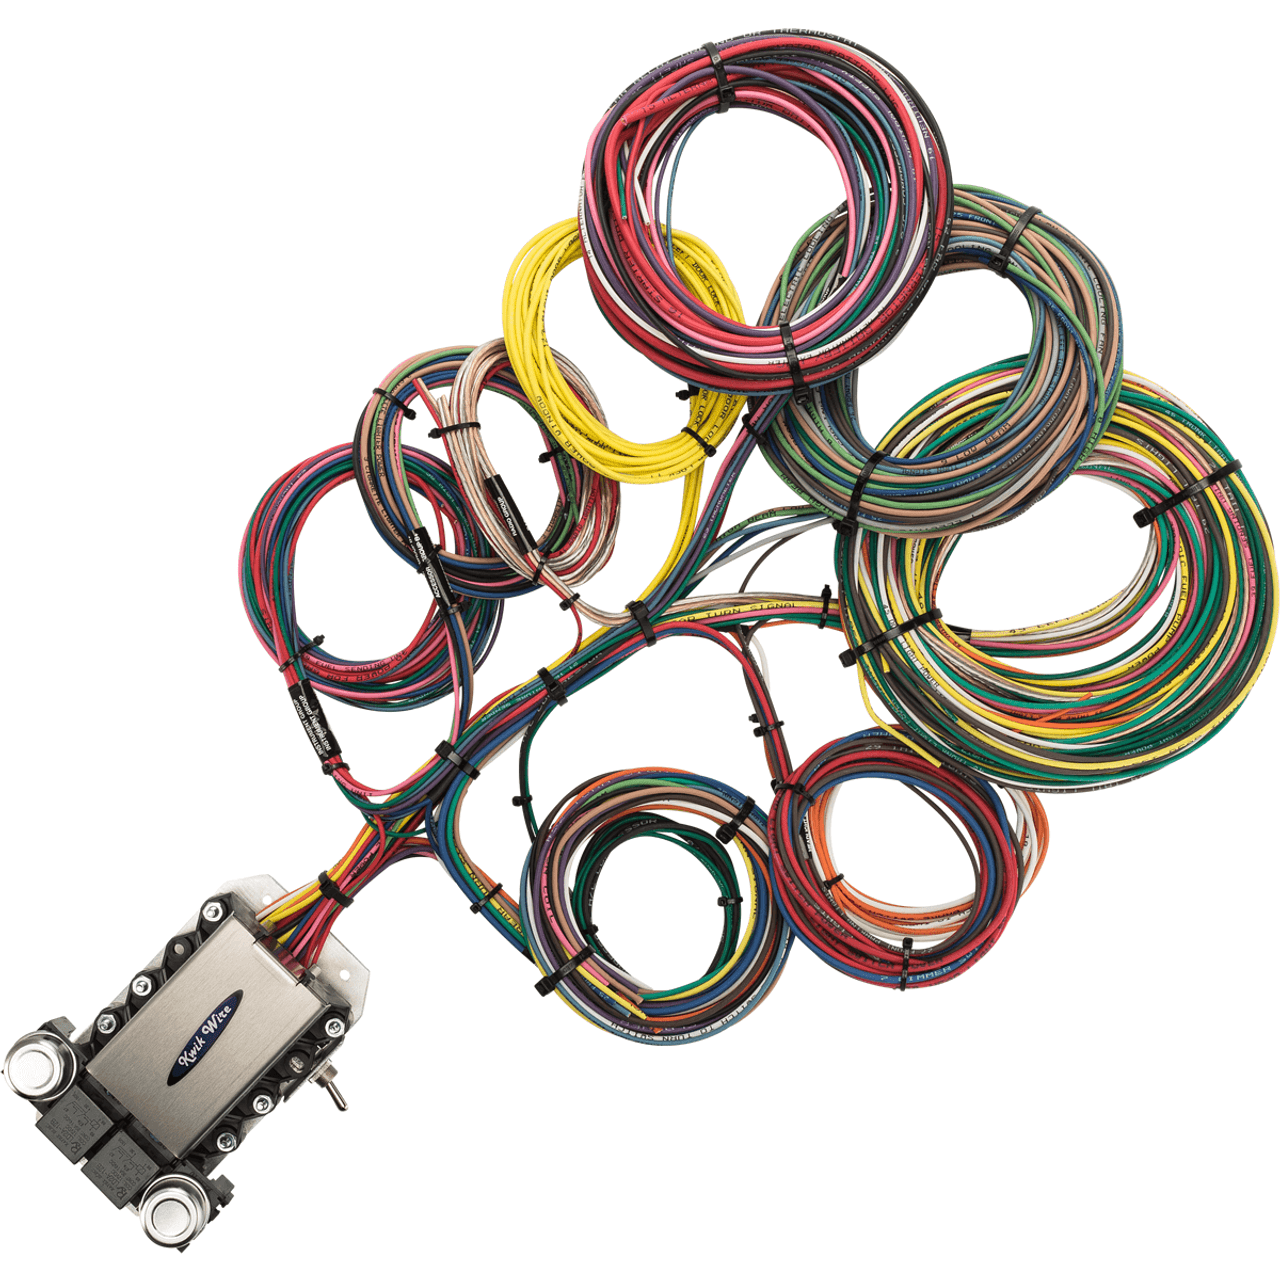 wiring harness design jobs in usa wiring diagram featuredwiring harness jobs in usa wiring diagram today [ 1200 x 1200 Pixel ]